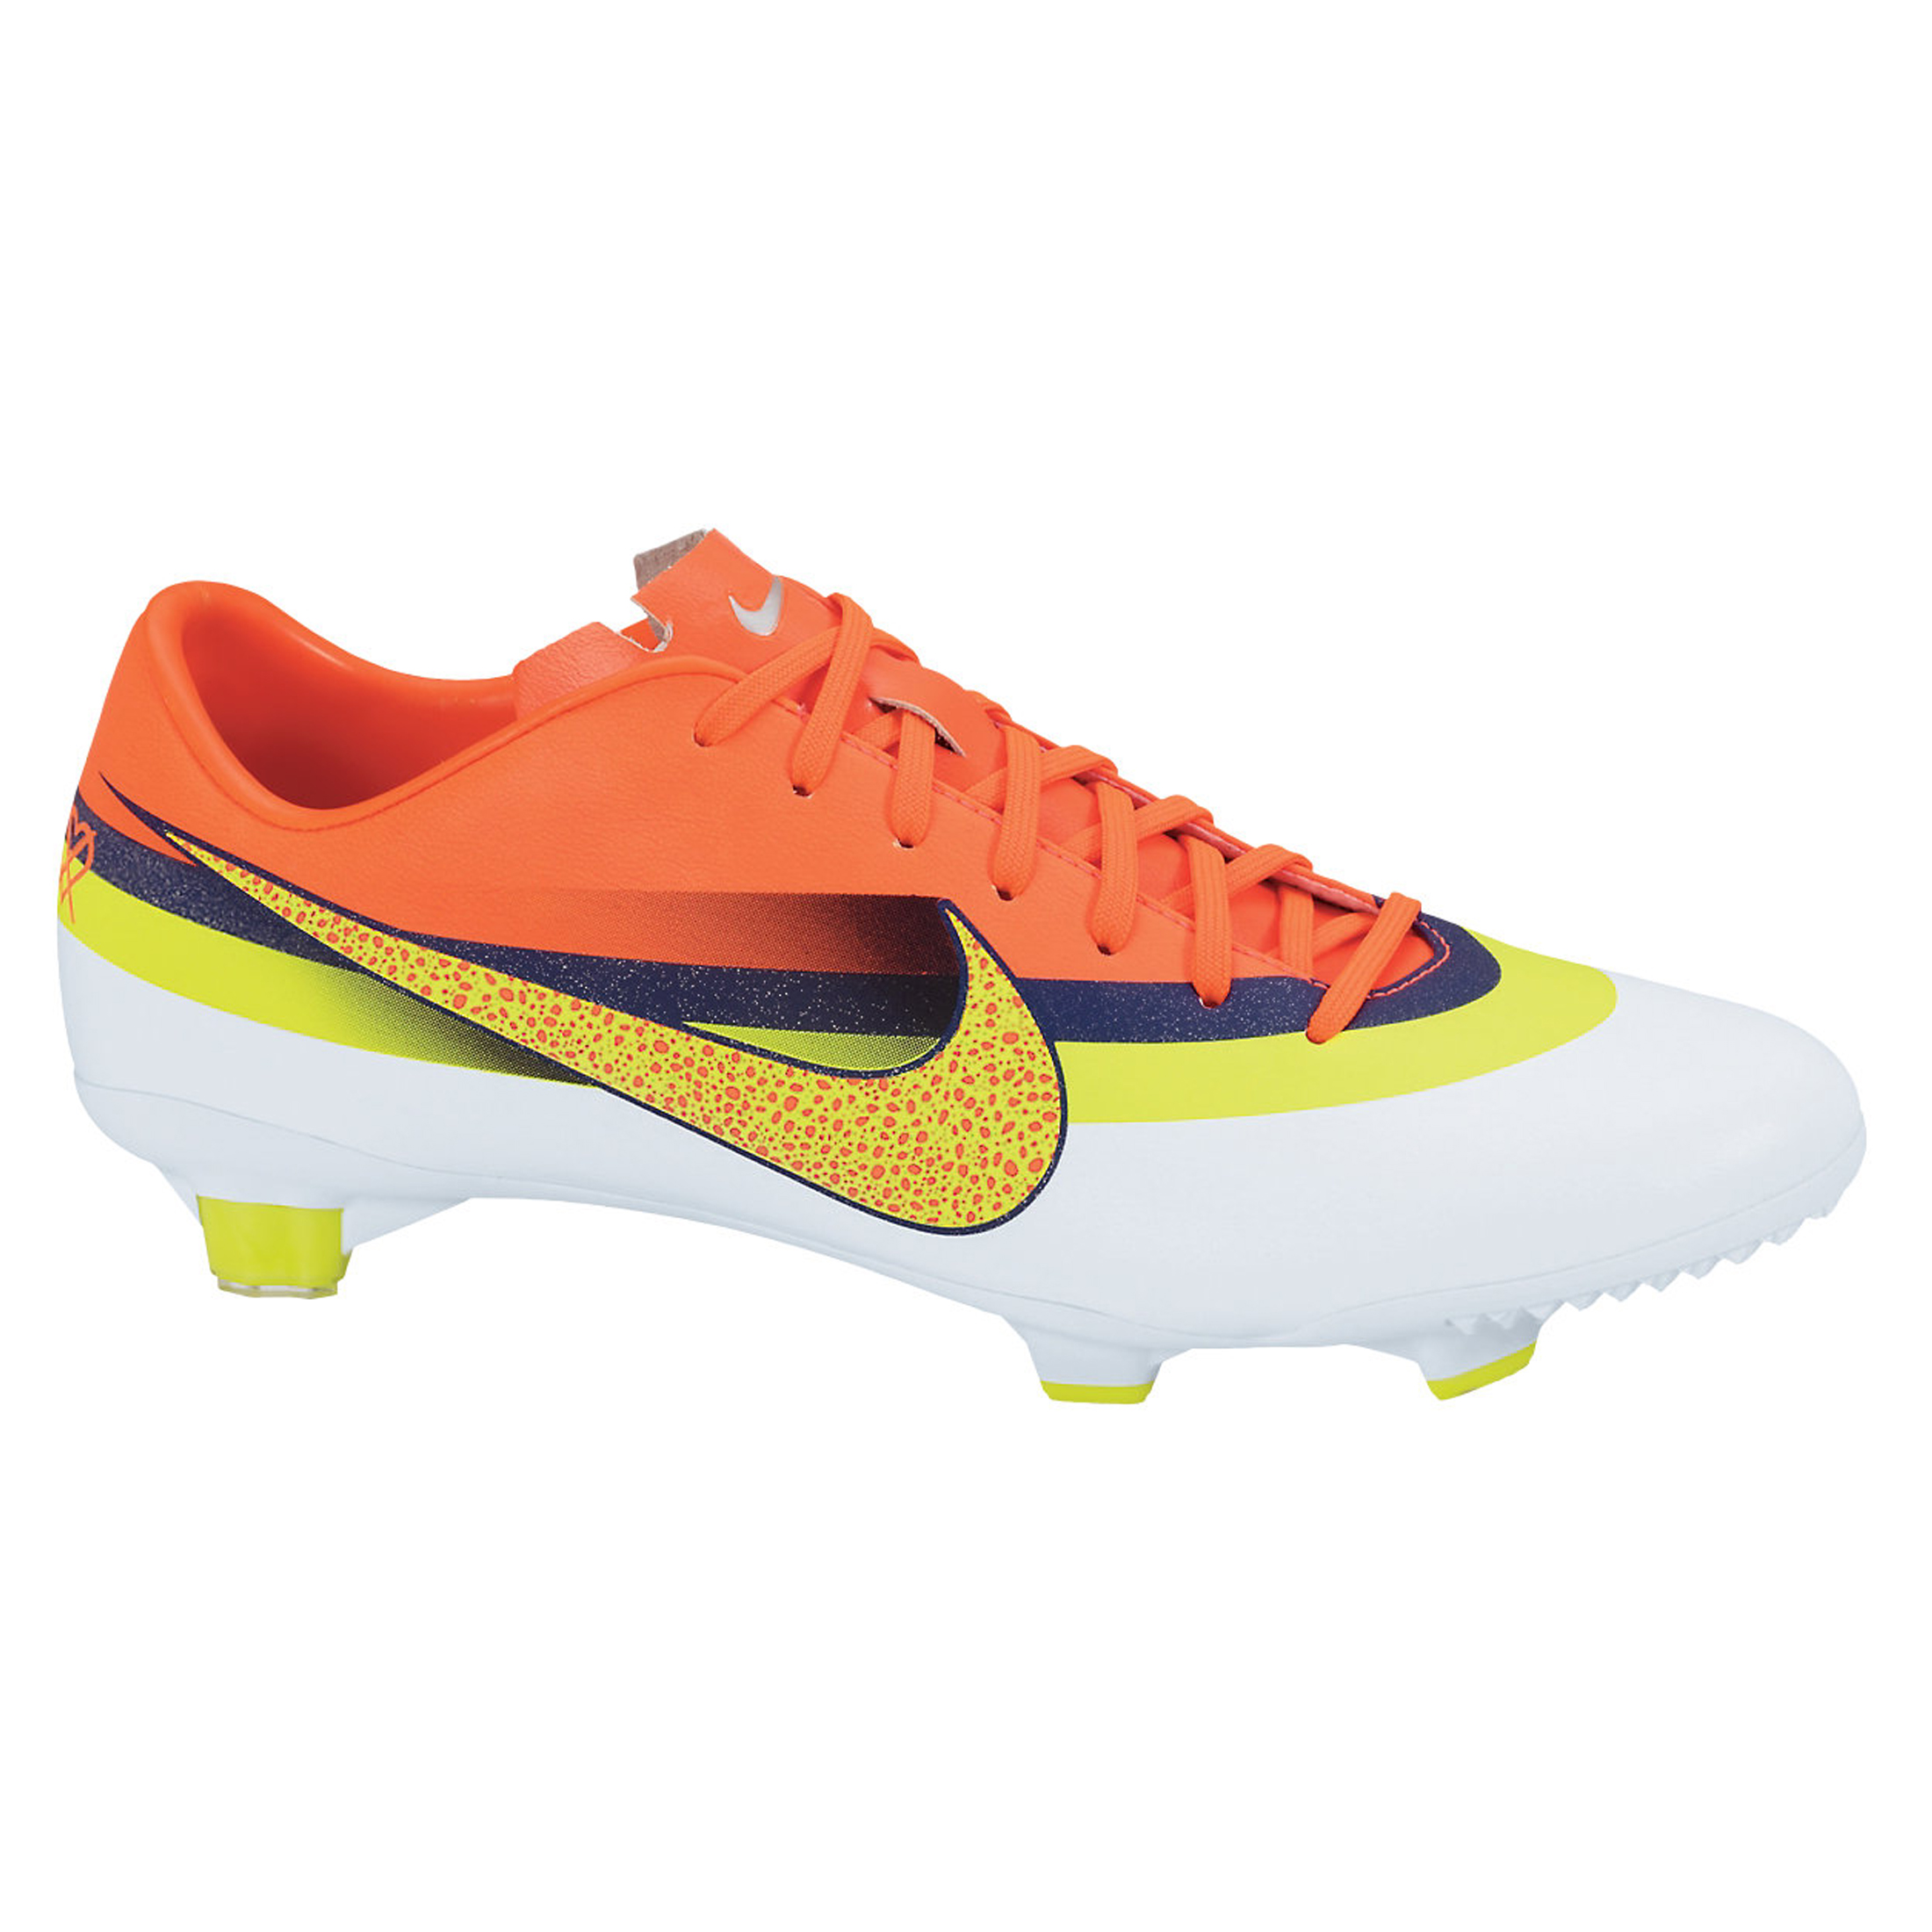 Nike Mercurial Vapor IX CR7 Firm Ground Football Boots - White/Volt/Loyal Blue/Total Crimson